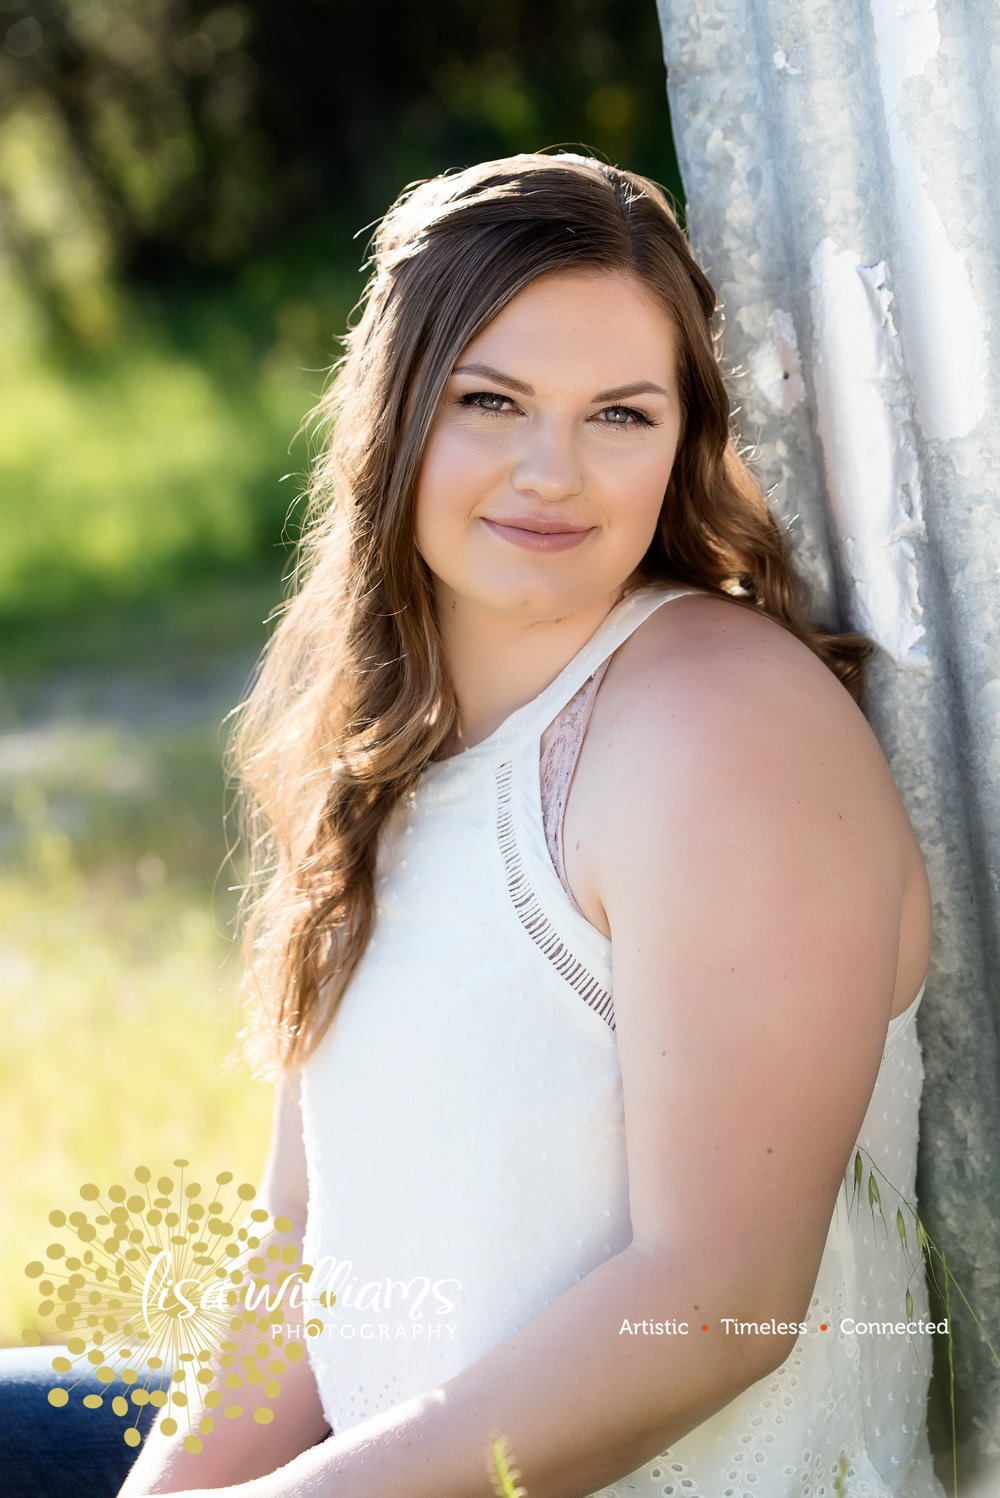 Lisa Williams photography – grass valley, Ca - Nevada county photographer – Colfax, CA – Rocklin – Roseville - Nevada City – Senior Portrait Photography – Alexa2.jpg